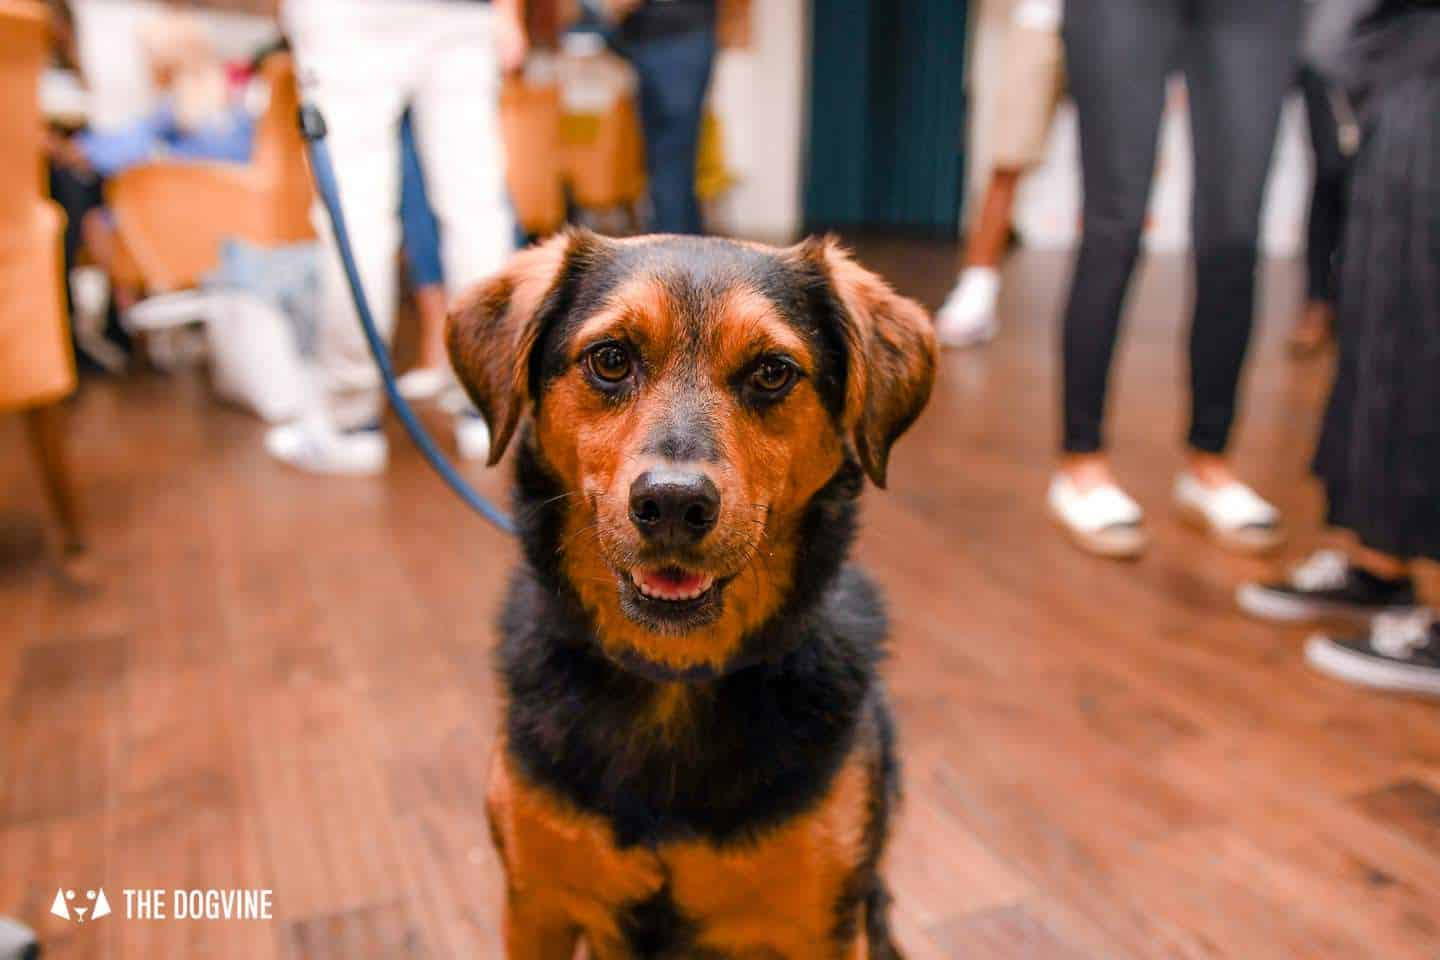 Dog-Friendly Cinema Picturehouse East Dulwich   Fantastic Beasts